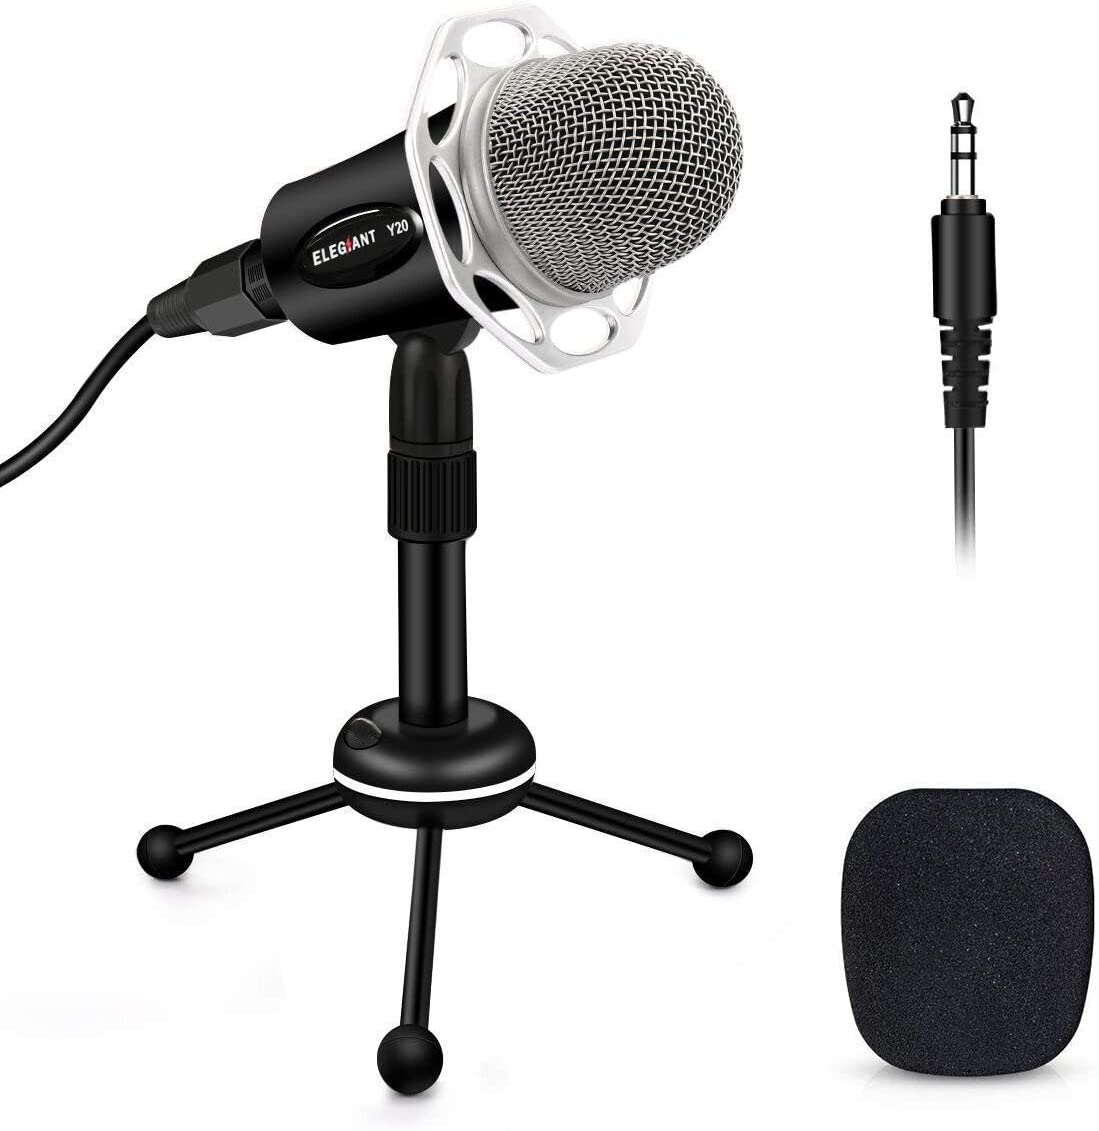 3.5mm Plug & Play PC Microphone, with Tripod Stand for Home Studio Recording Microphone for Computer, Smartphone, Podcasting Karaoke, YouTube, Skype, Games